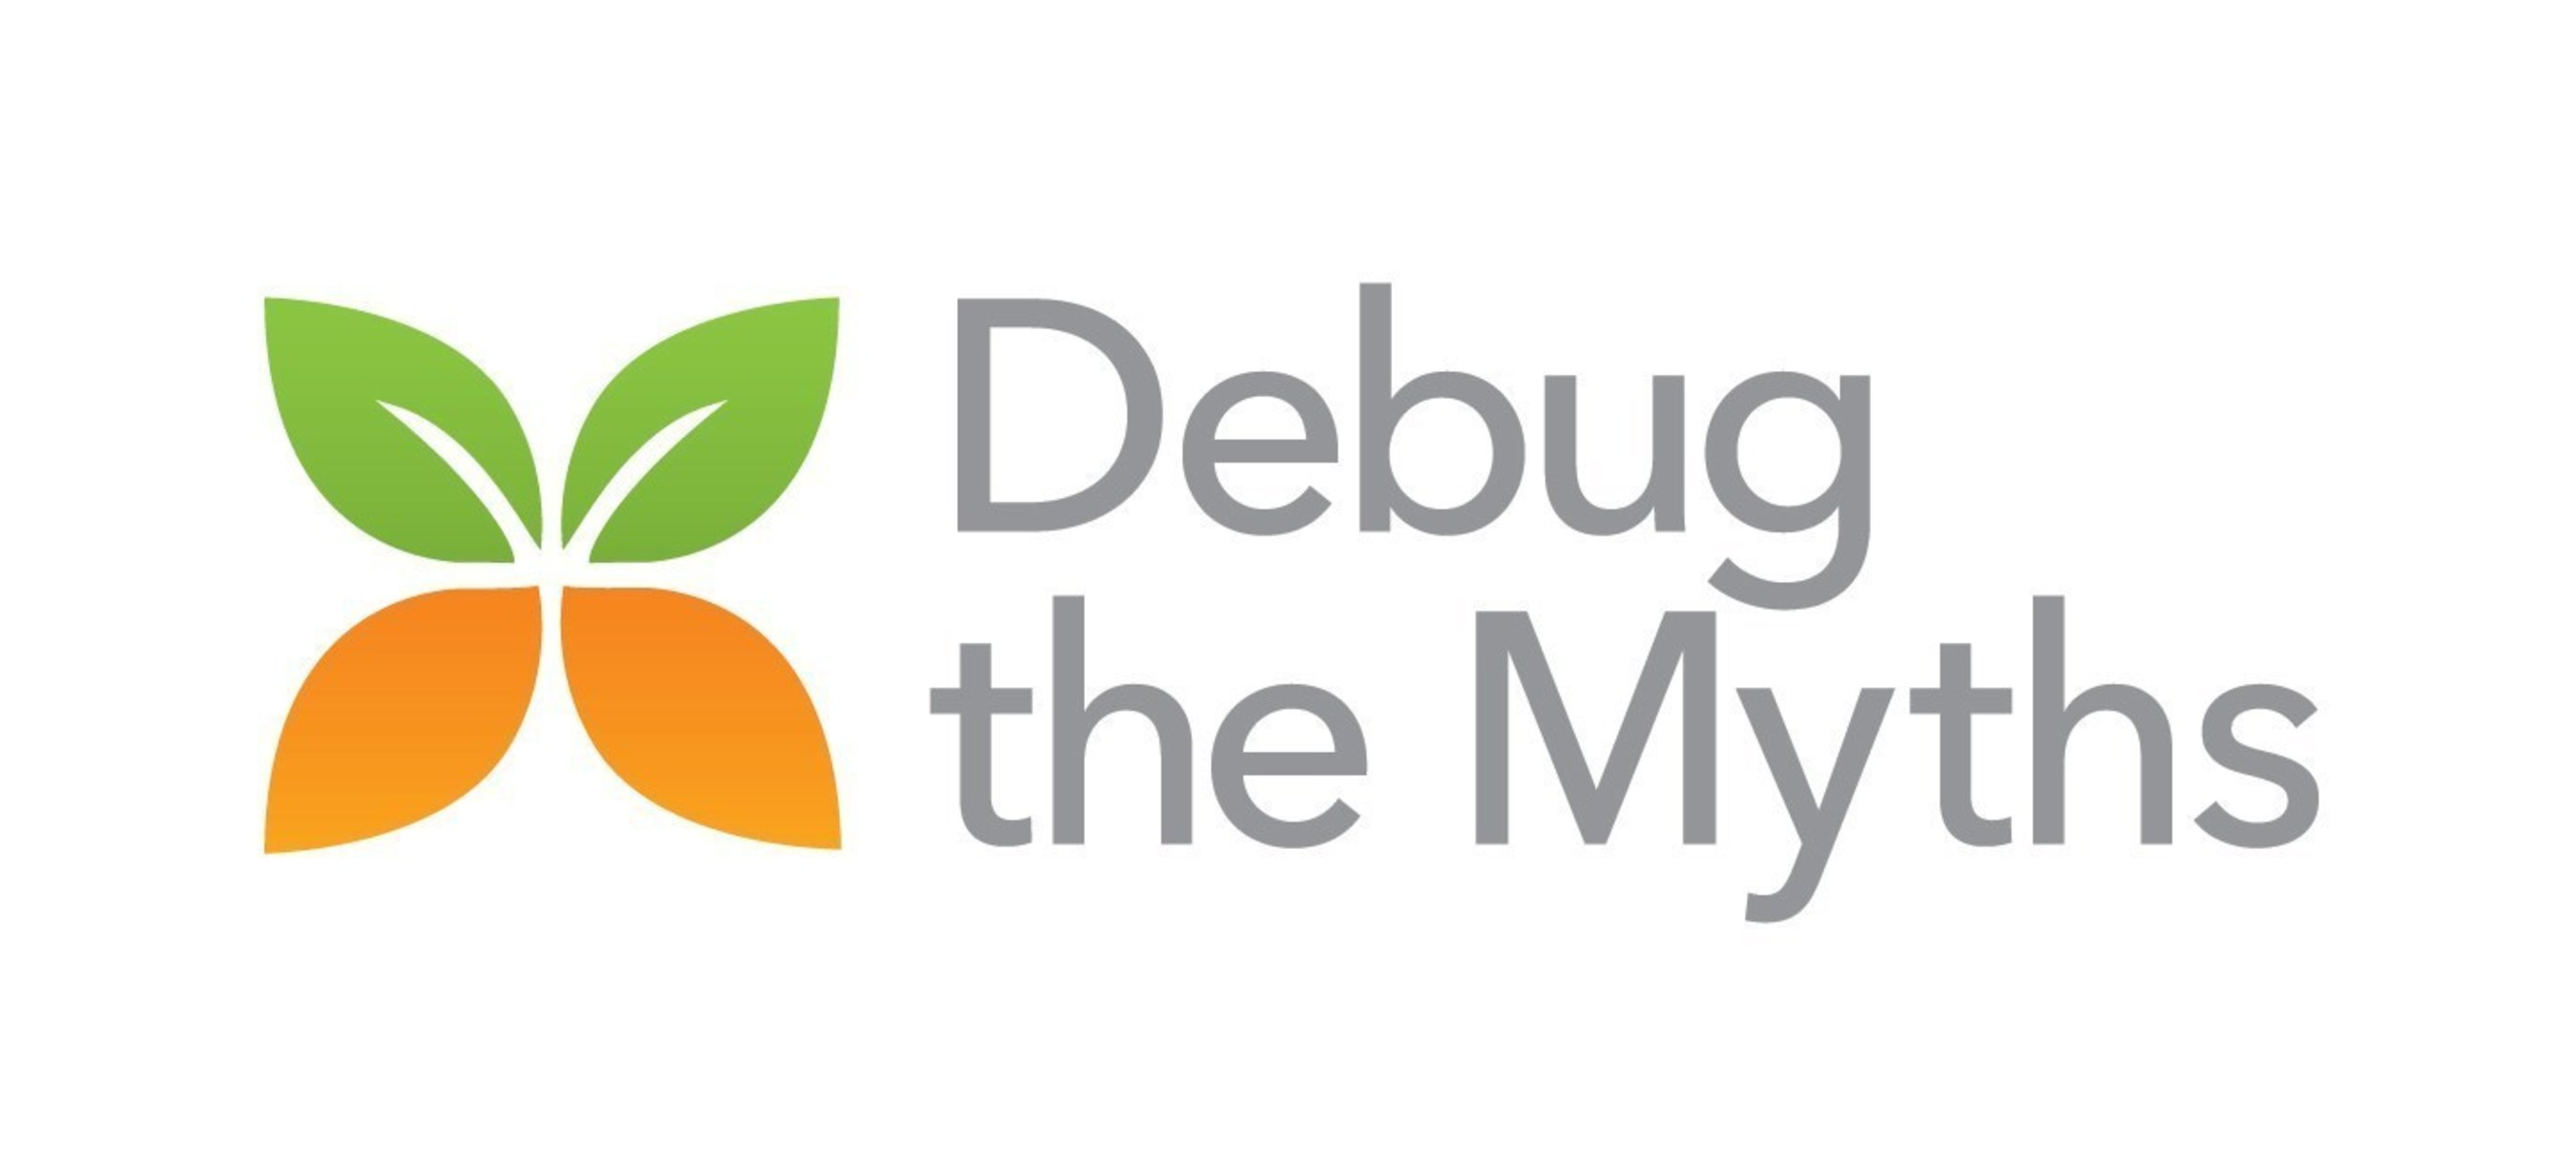 Debug the Myths (www.debugthemyths.com)